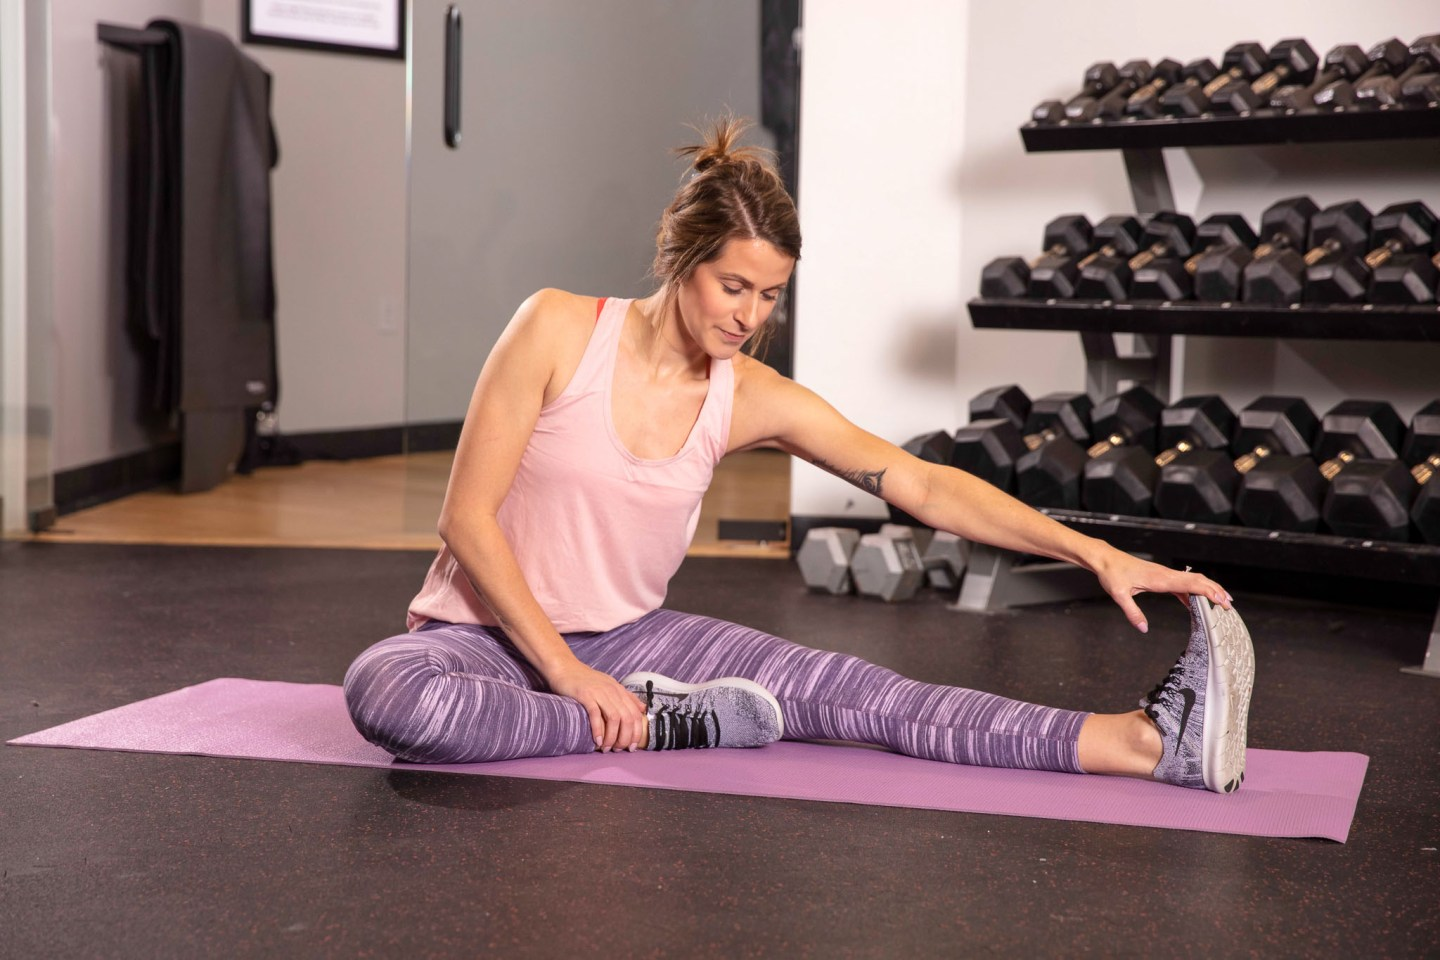 Workout Gear – Keep That New Years Resolution